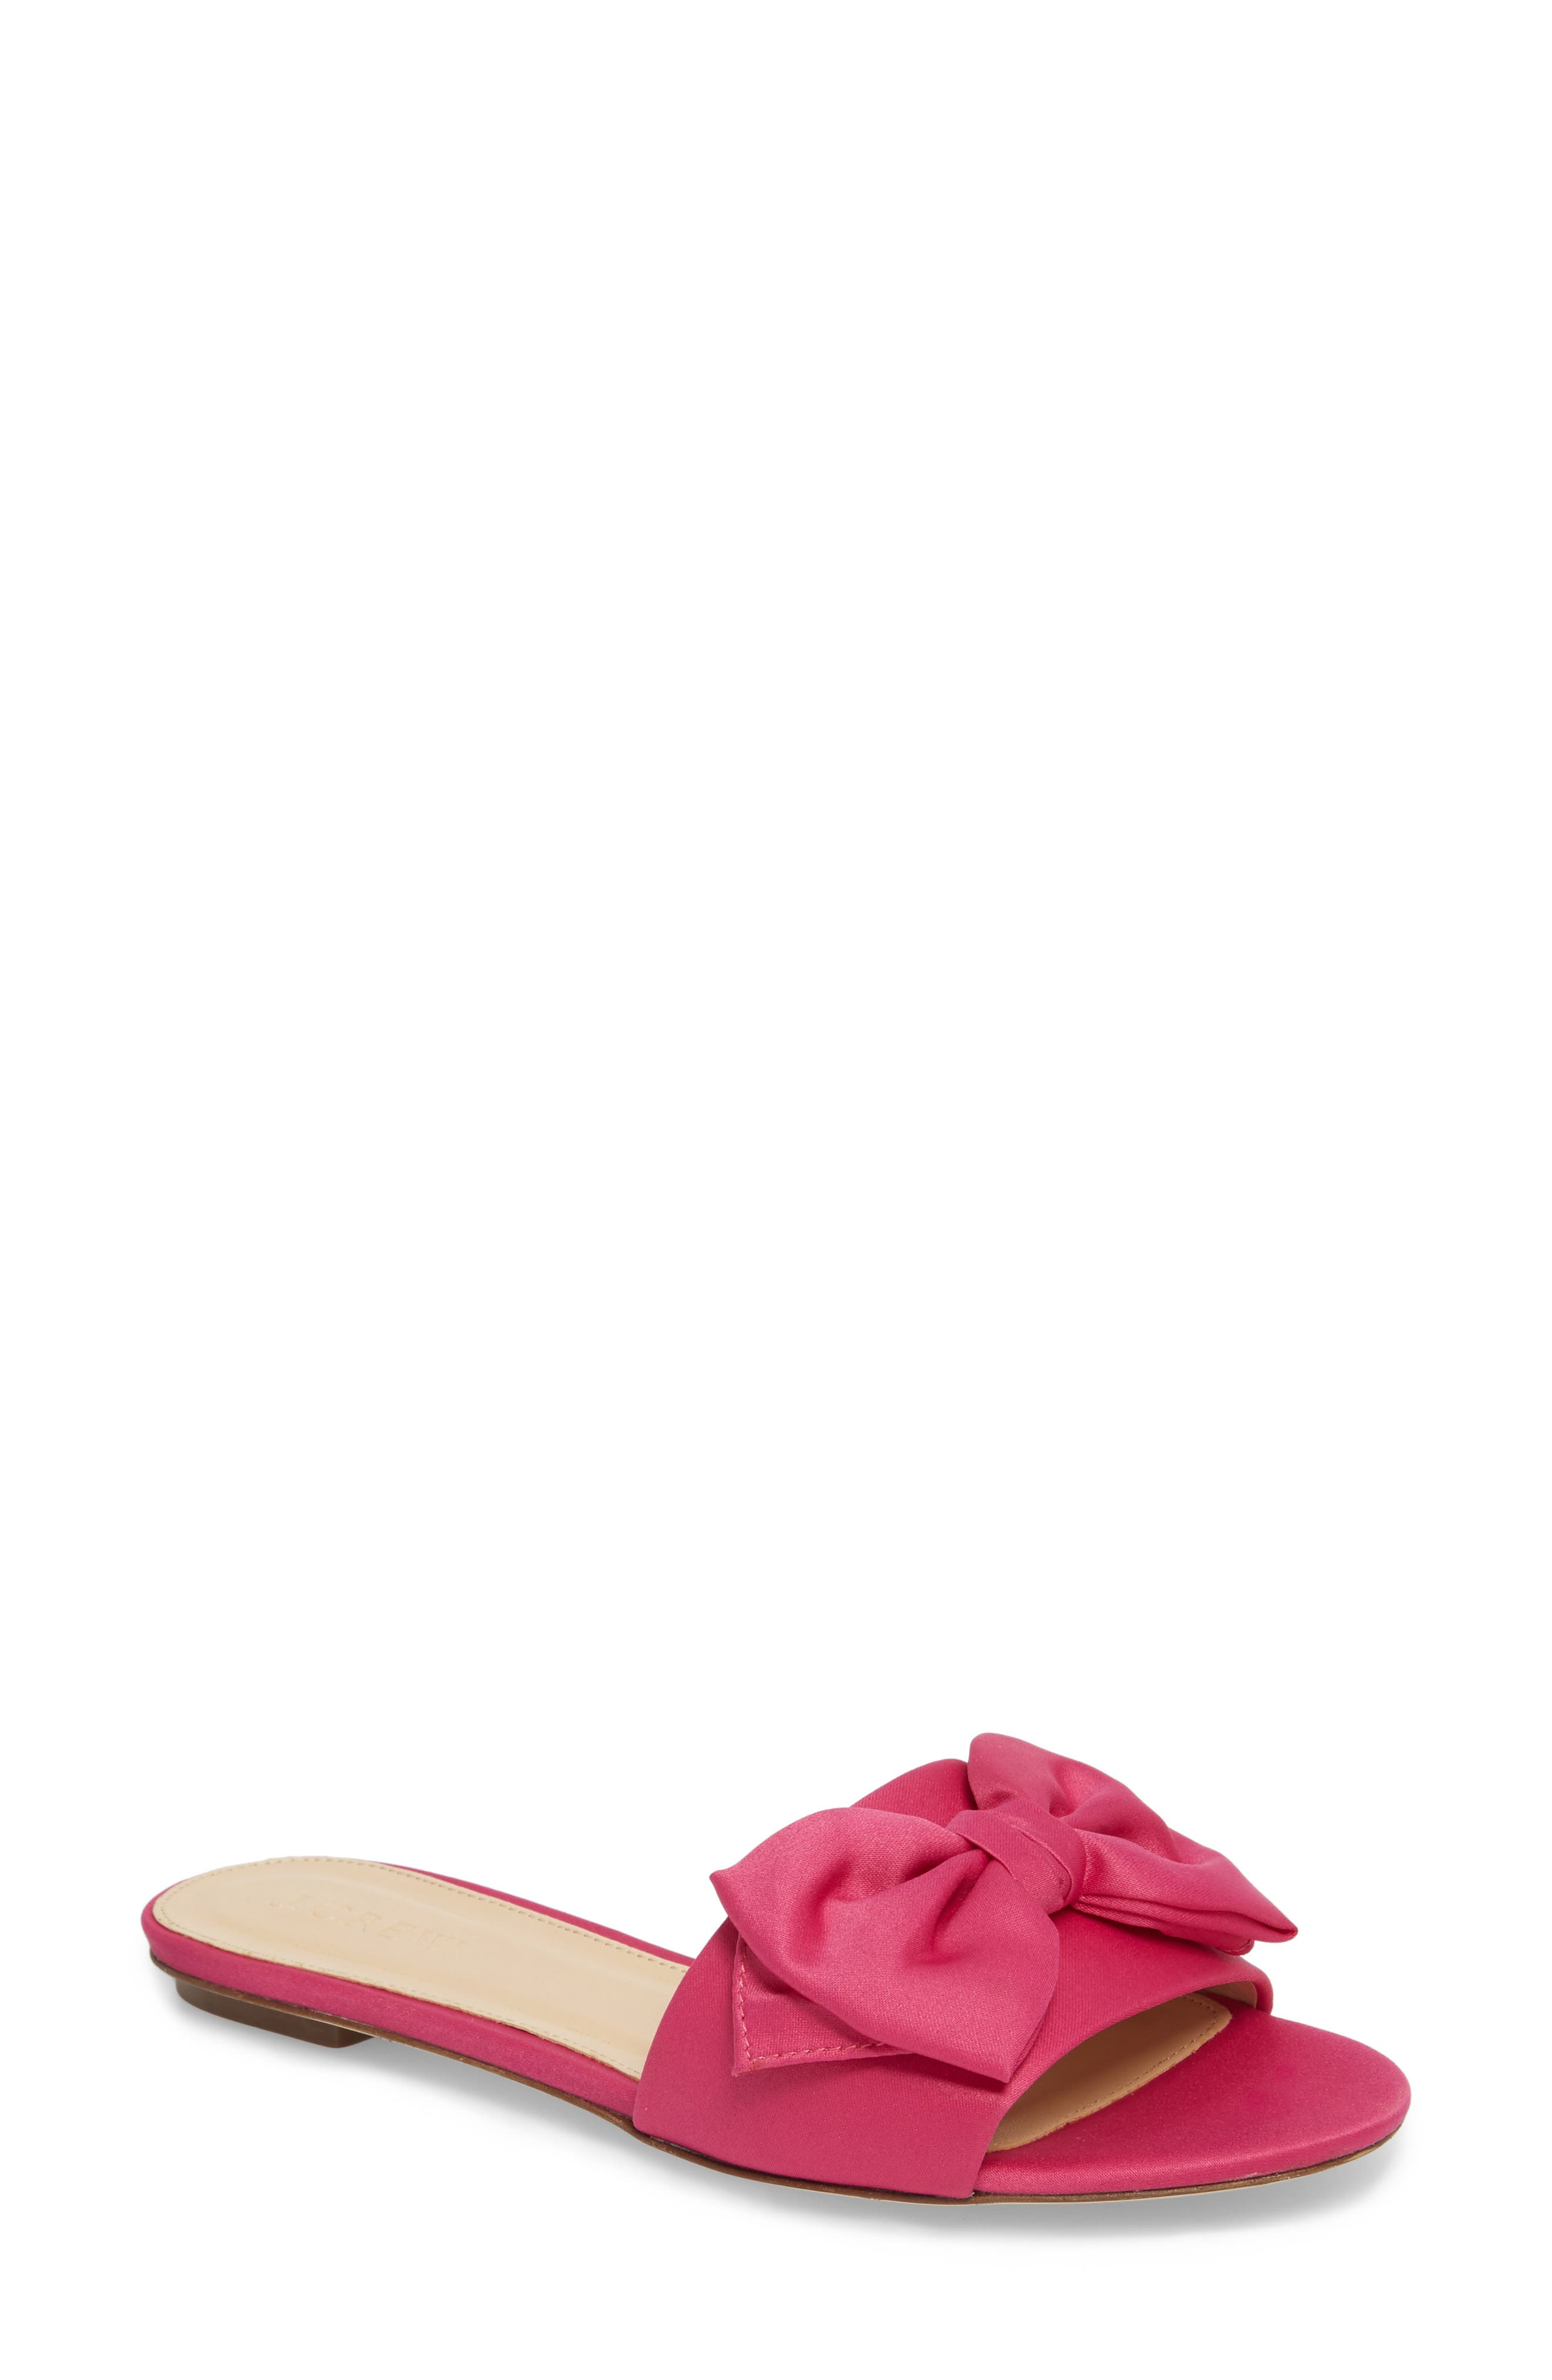 Main Image - J.Crew Knotted Satin Bow Slide (Women)